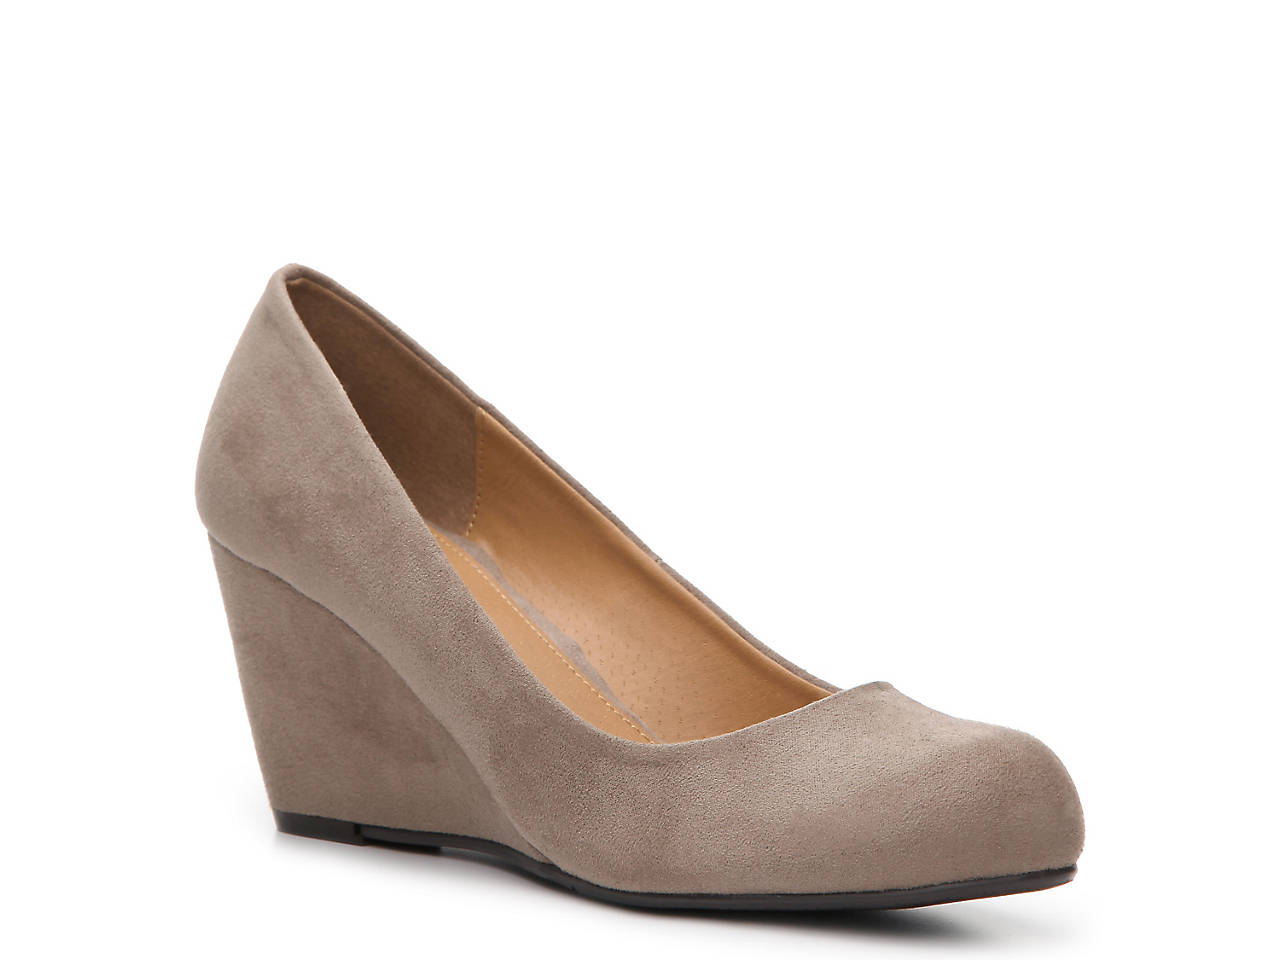 CL by Laundry Nima Wedge Pump Women's Shoes | DSW